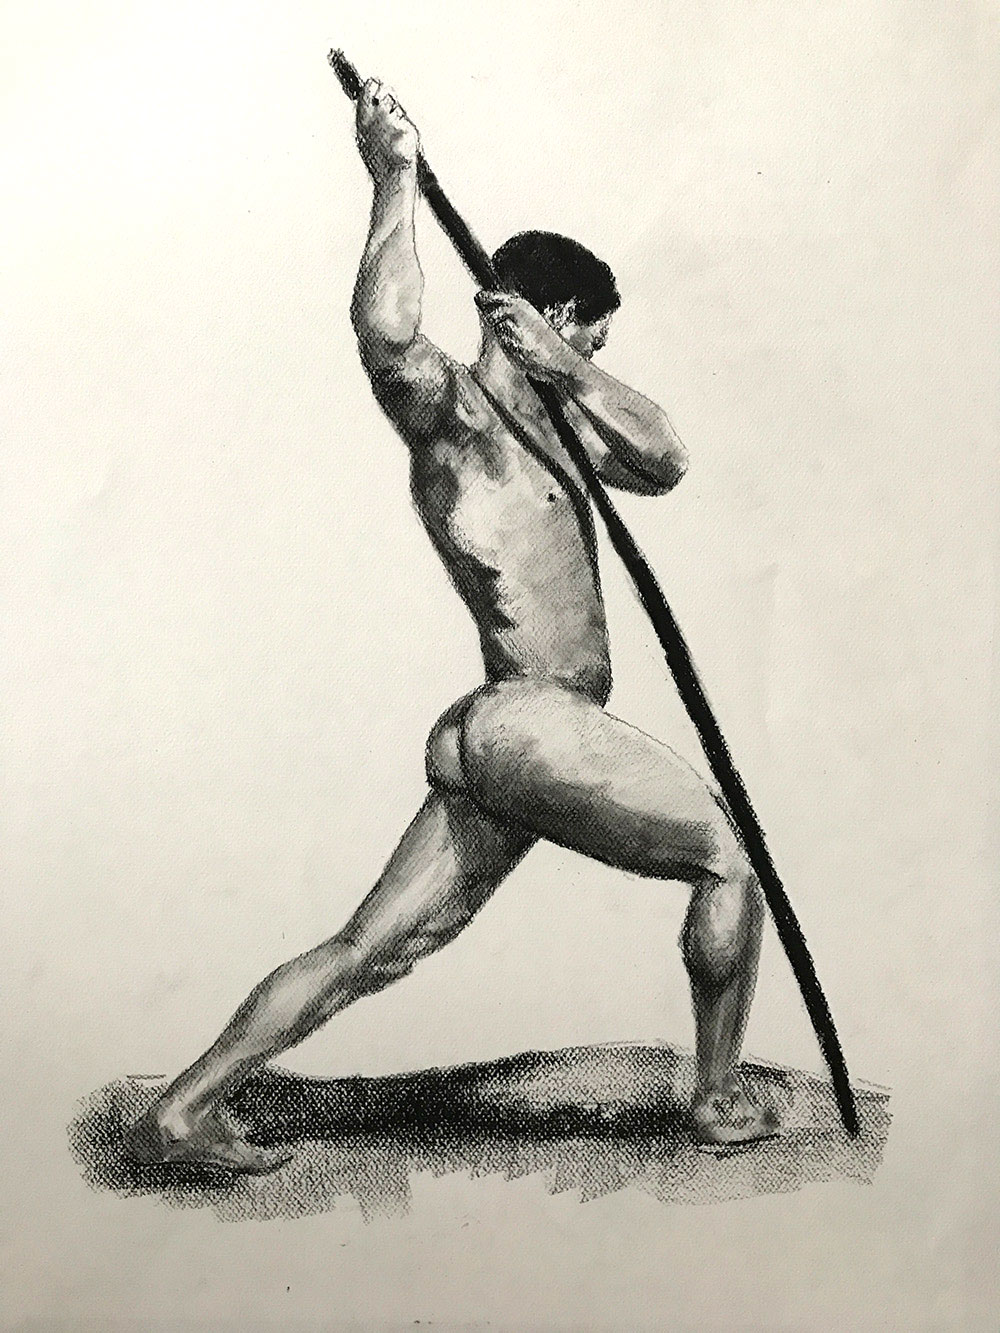 Male Nude Figure Study - Final